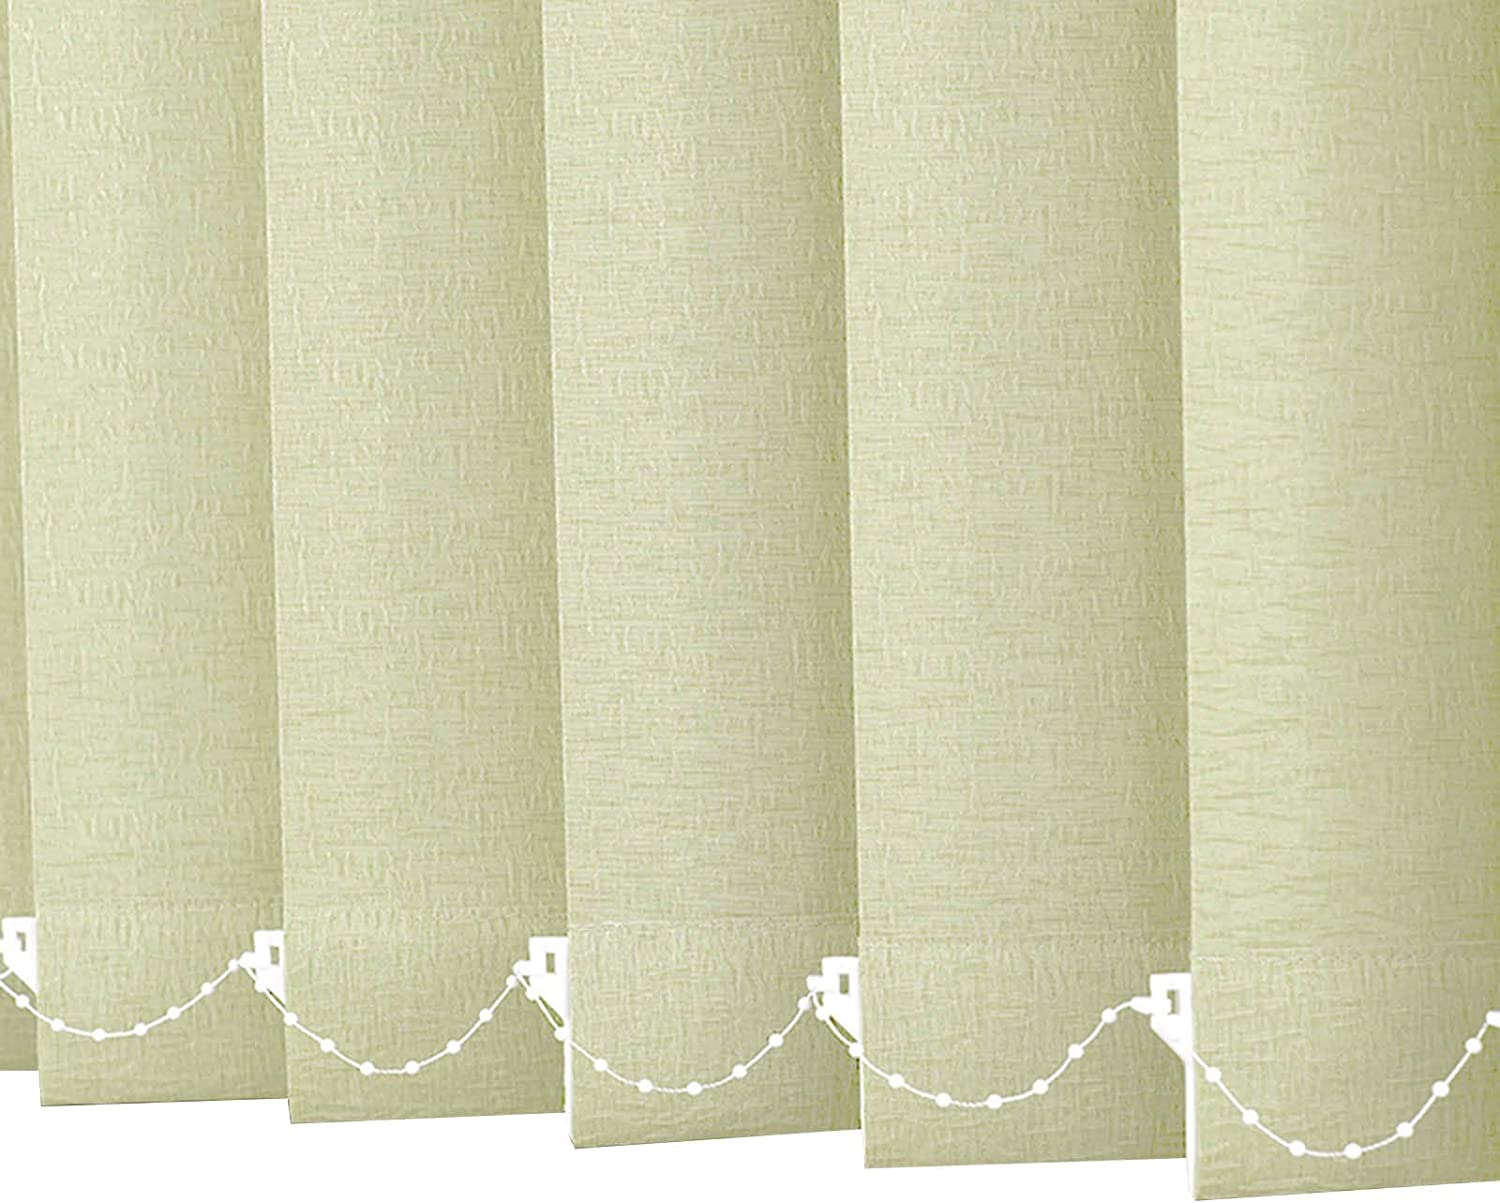 JLXJ Blackout Vertical Blinds Beige Window Exterio Inside Large Max 68% OFF New product!!